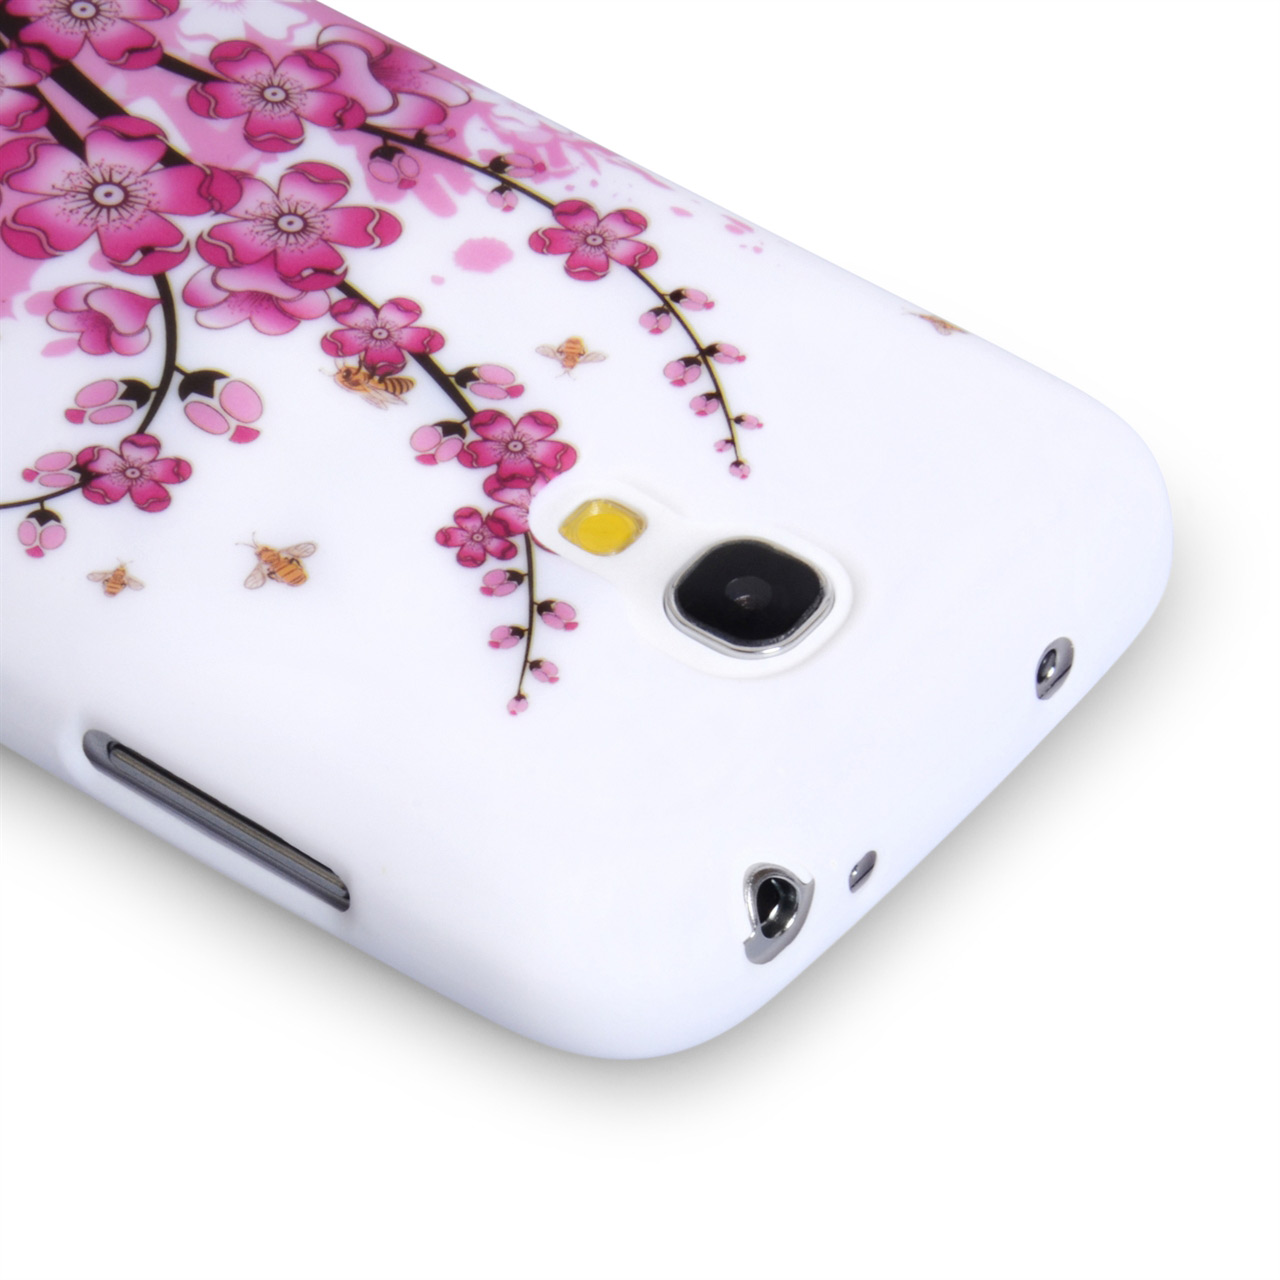 YouSave Samsung Galaxy S4 Mini Floral Bee Silicone Gel Case